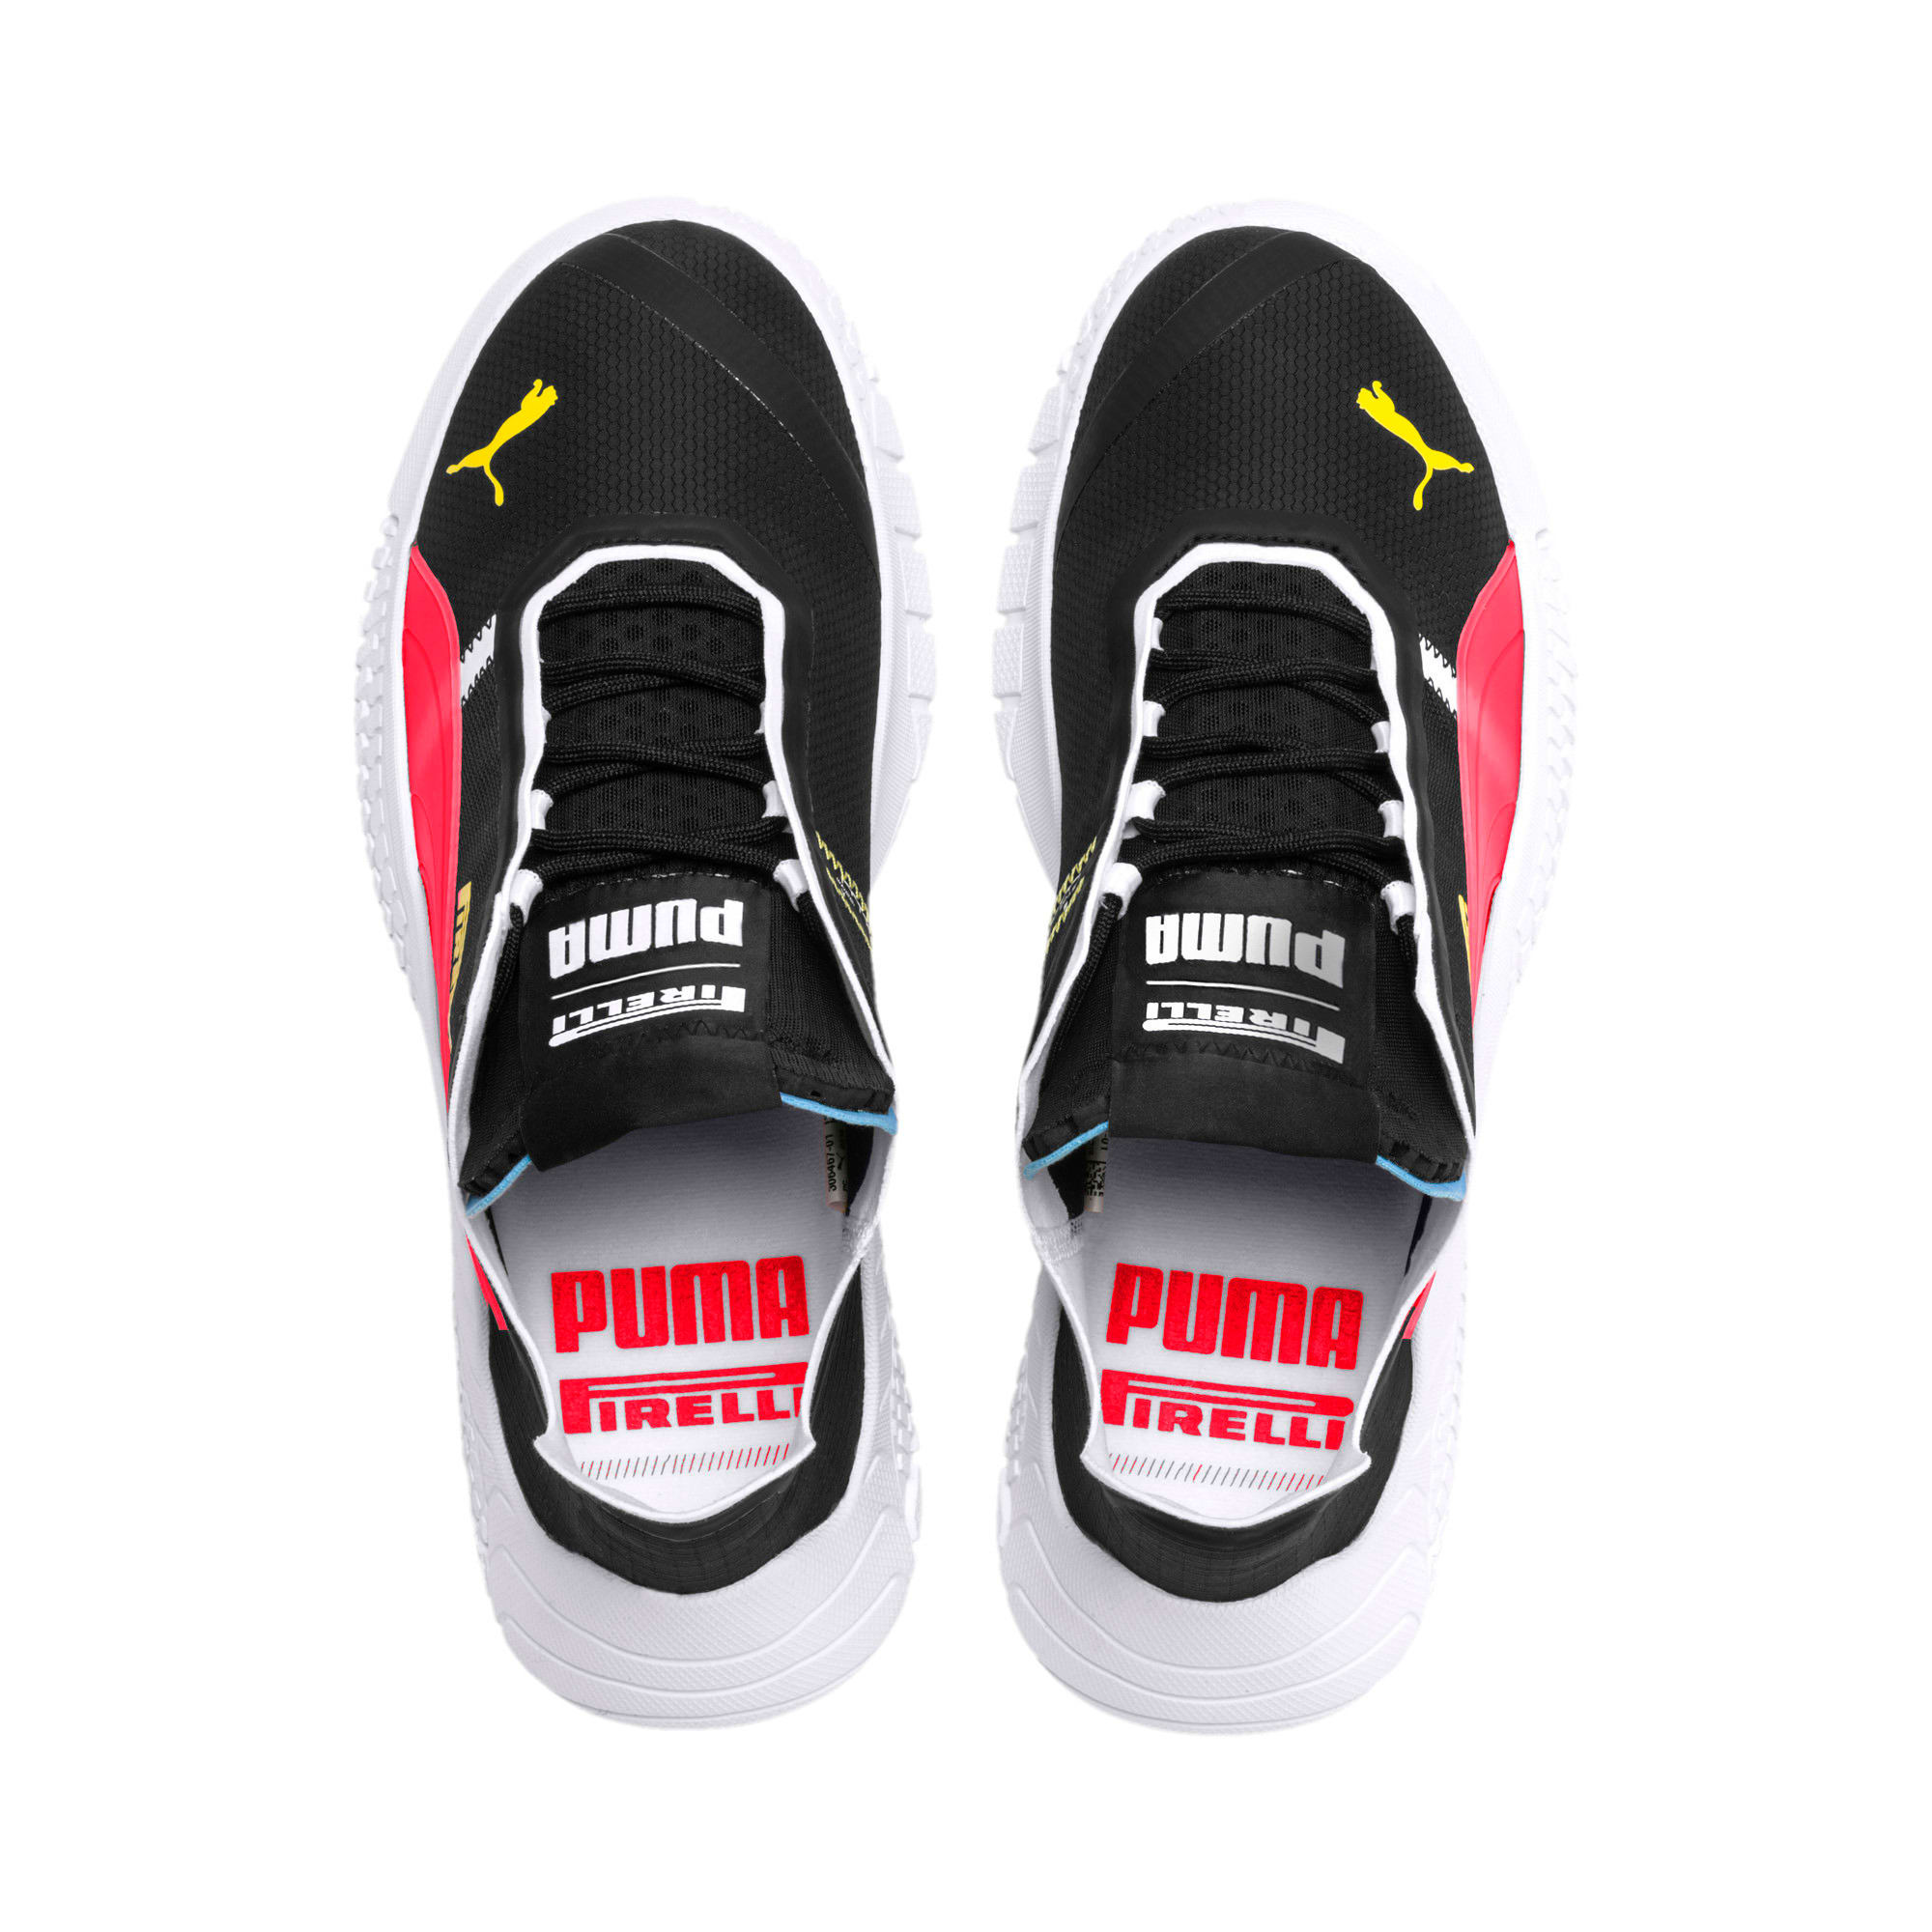 Thumbnail 7 of Pirelli Replicat-X Trainers, Black-Puma Red- White, medium